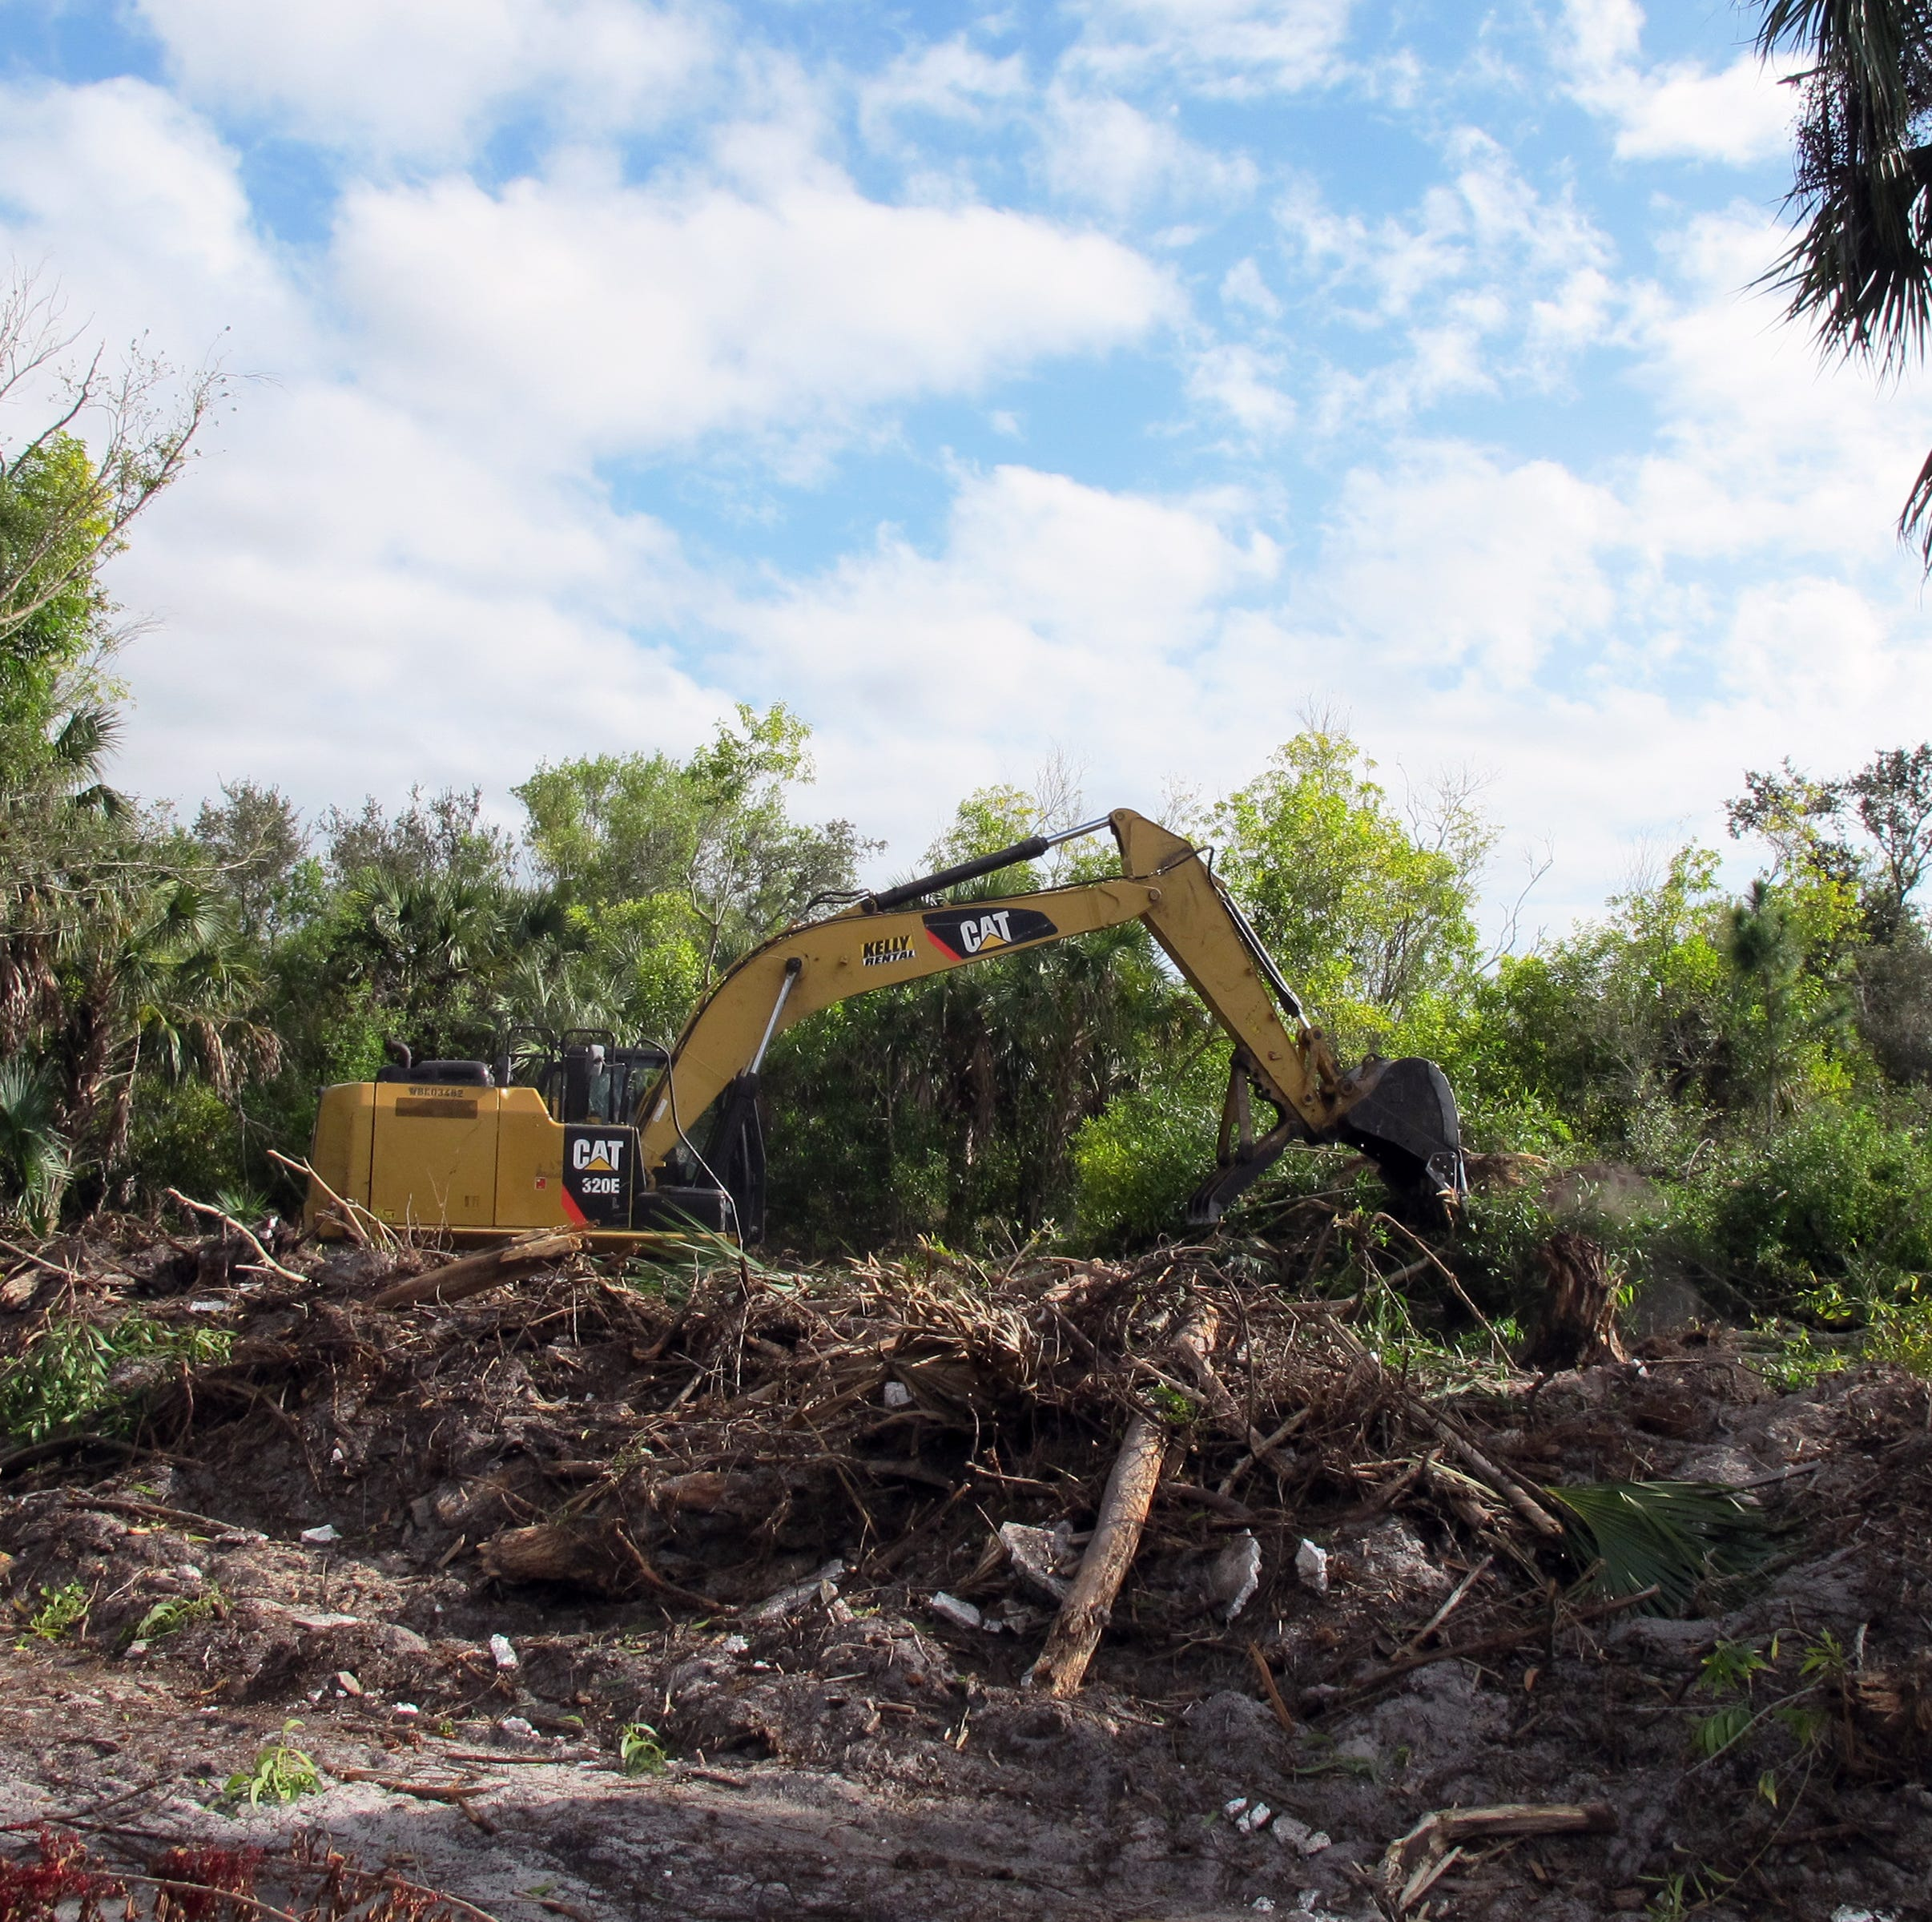 In the Know: Land cleared for 2 housing projects on Manatee Road